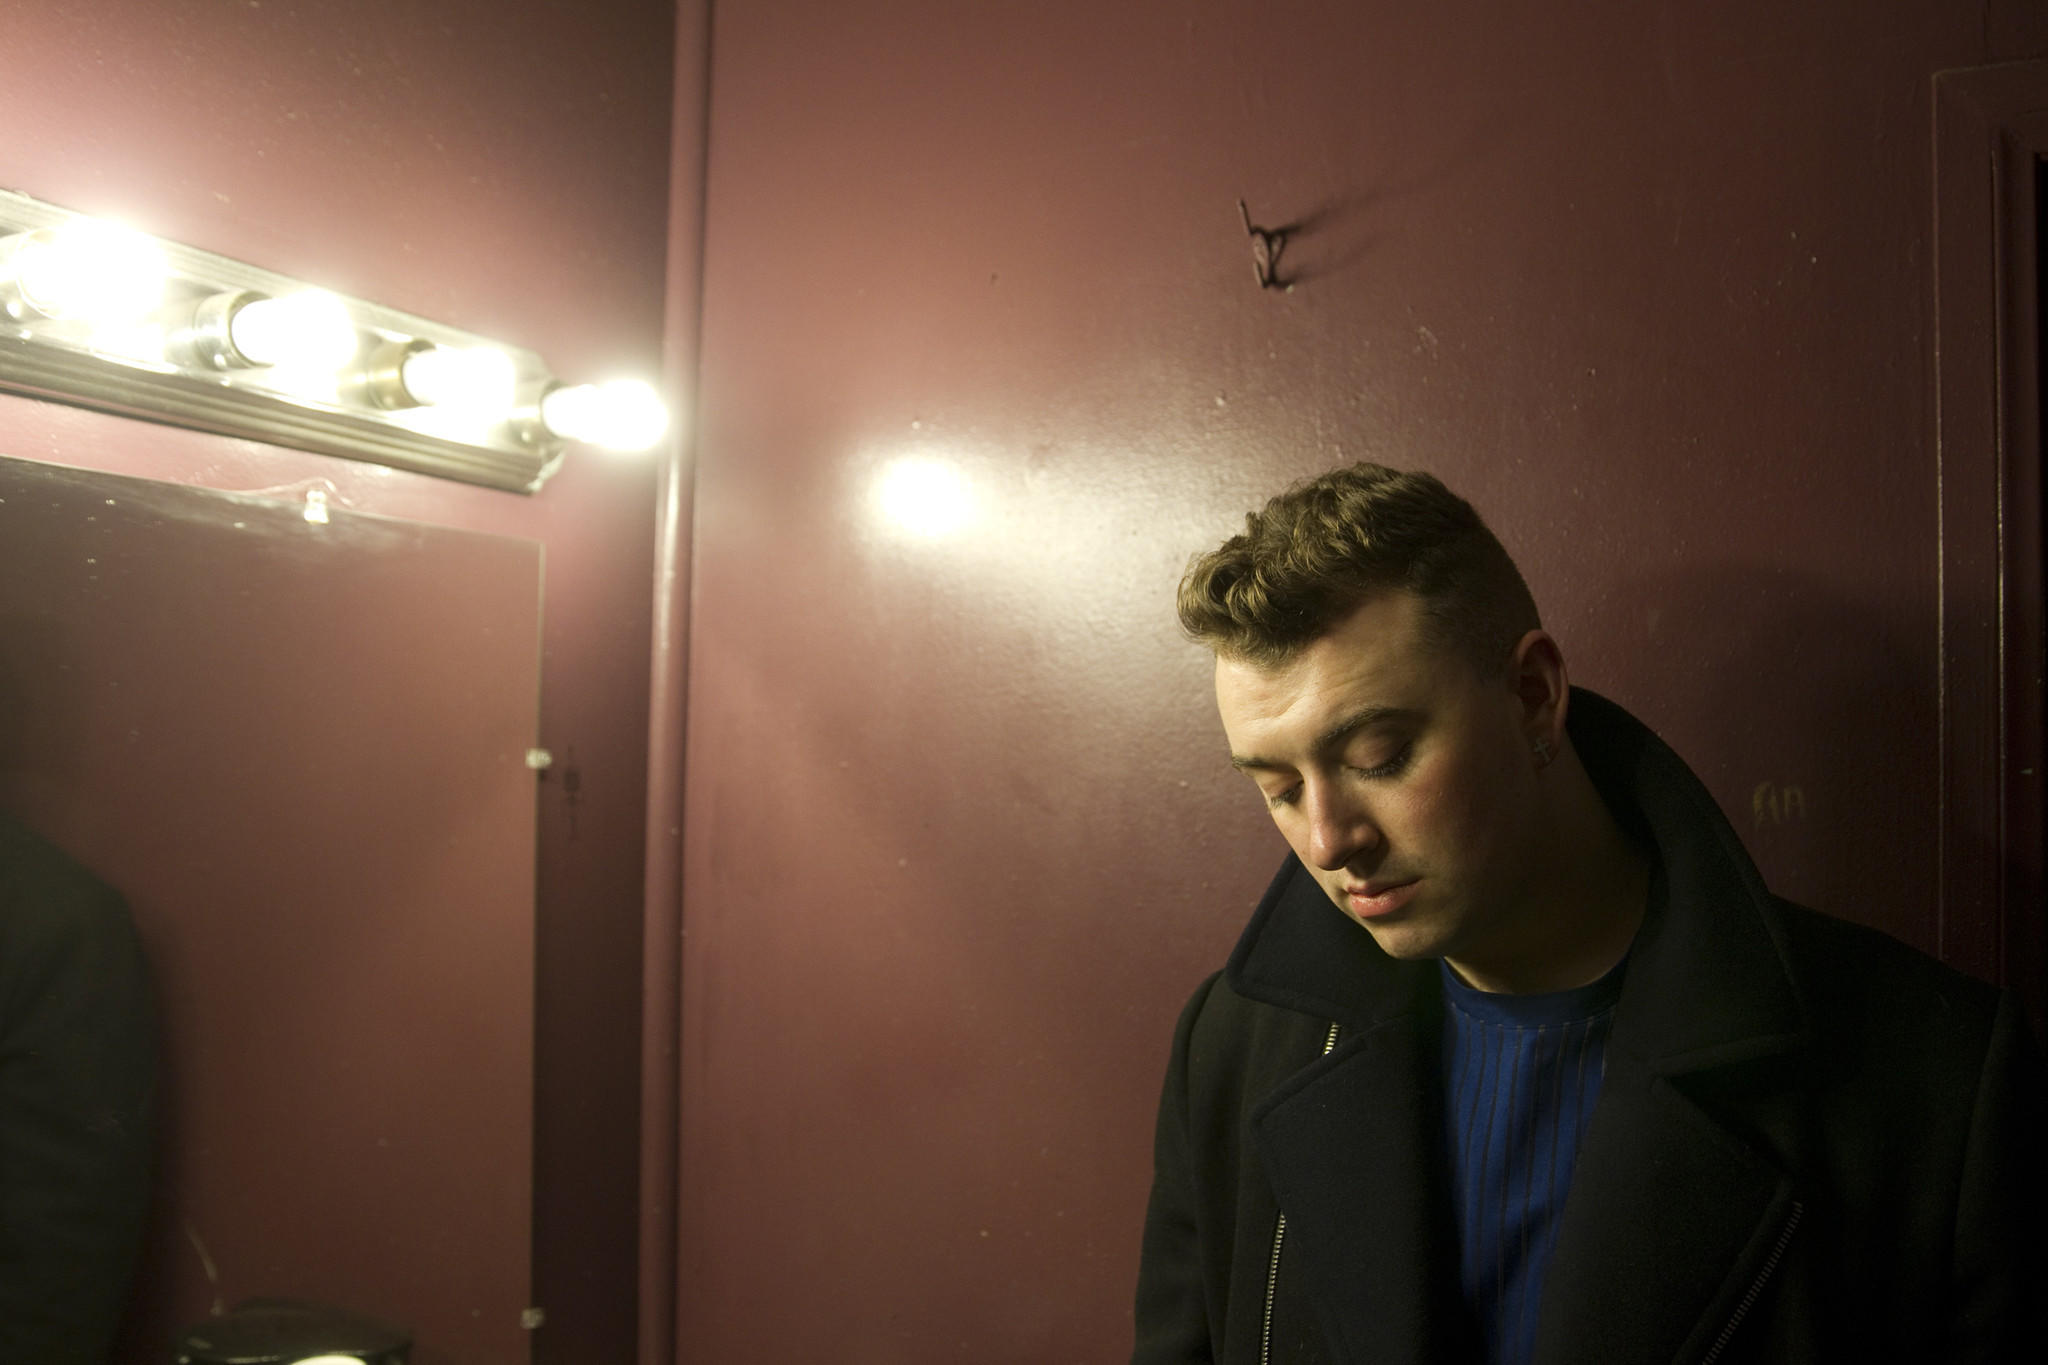 Sam Smith, the breakout British voice behind Disclosure's hit Latch, made his Los Angeles debut with a pair of sold-out shows at the Troubadour in West Hollywood. Photo taken in Smith's dressing room before his show on Tuesday, Dec. 3, 2013.